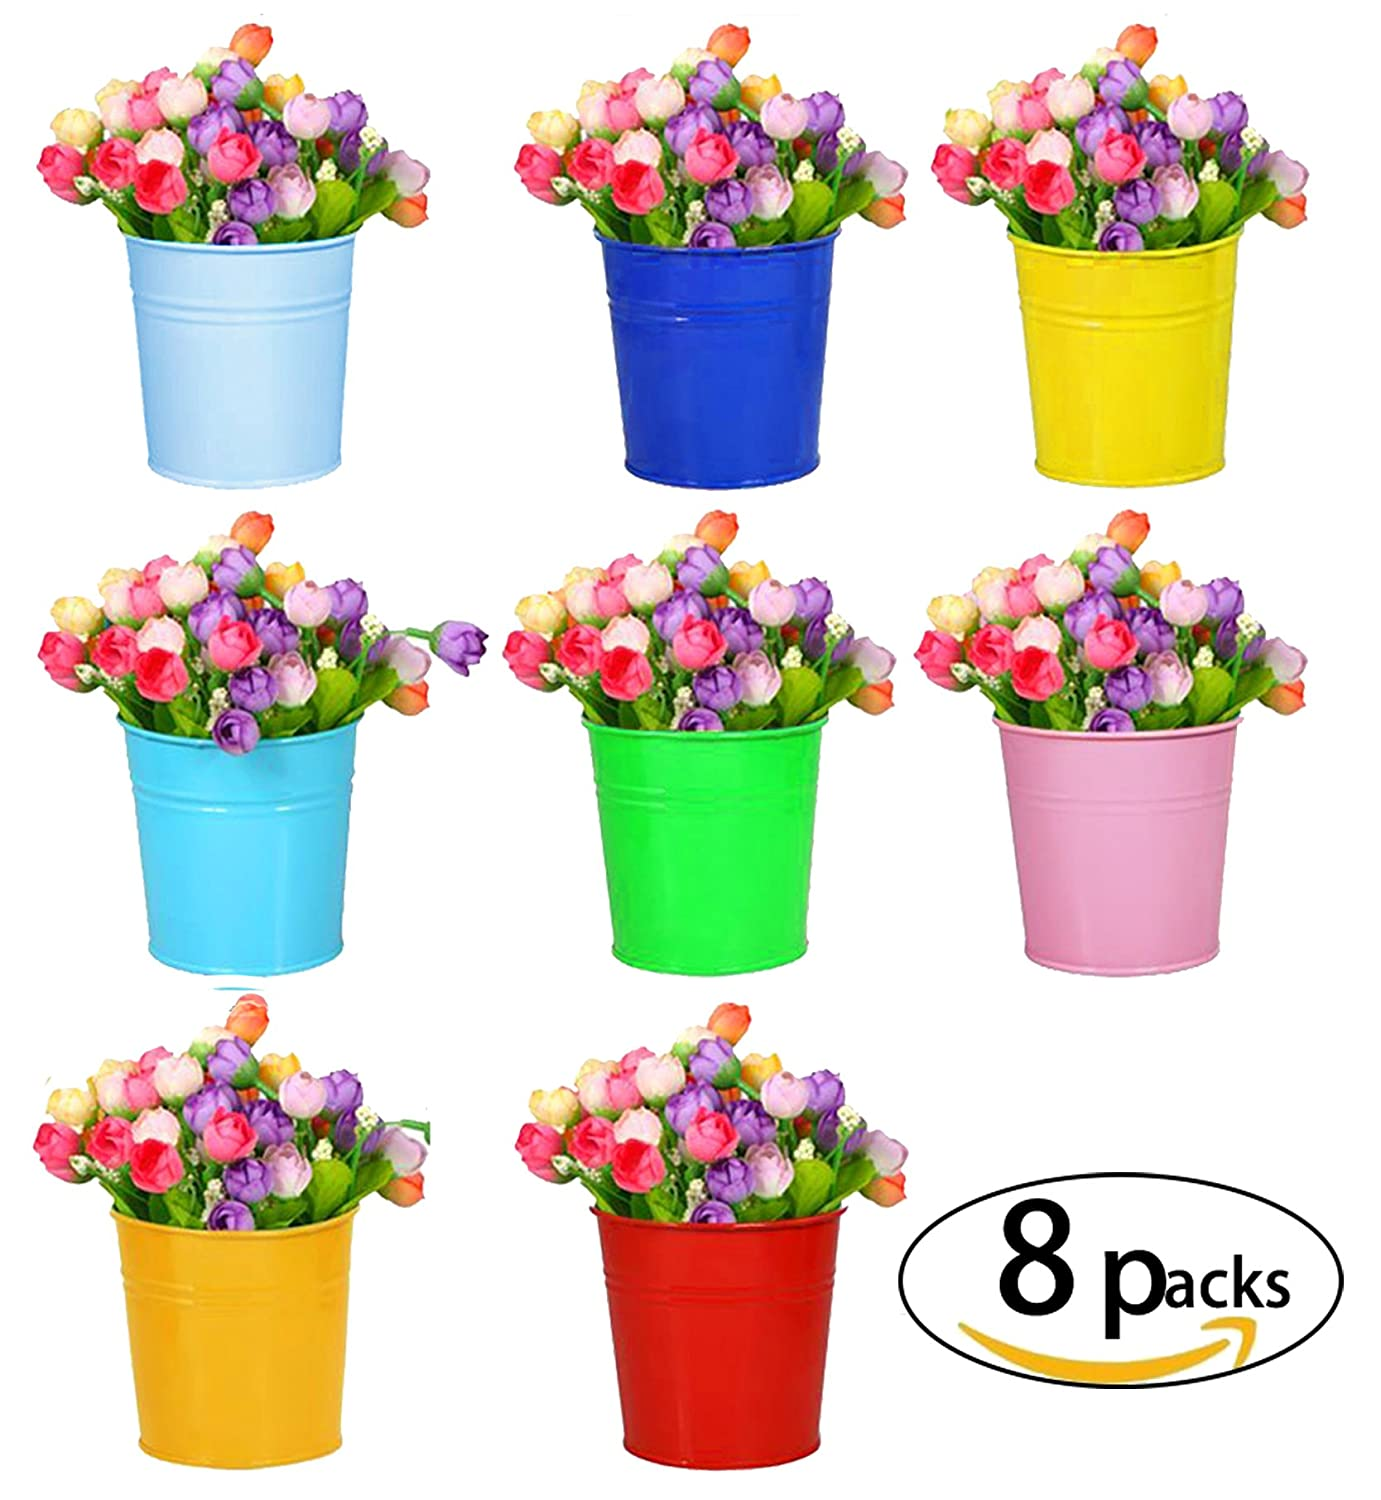 planter pots flower planter pots picture dia havana round plastic planter pot planters extra. Black Bedroom Furniture Sets. Home Design Ideas